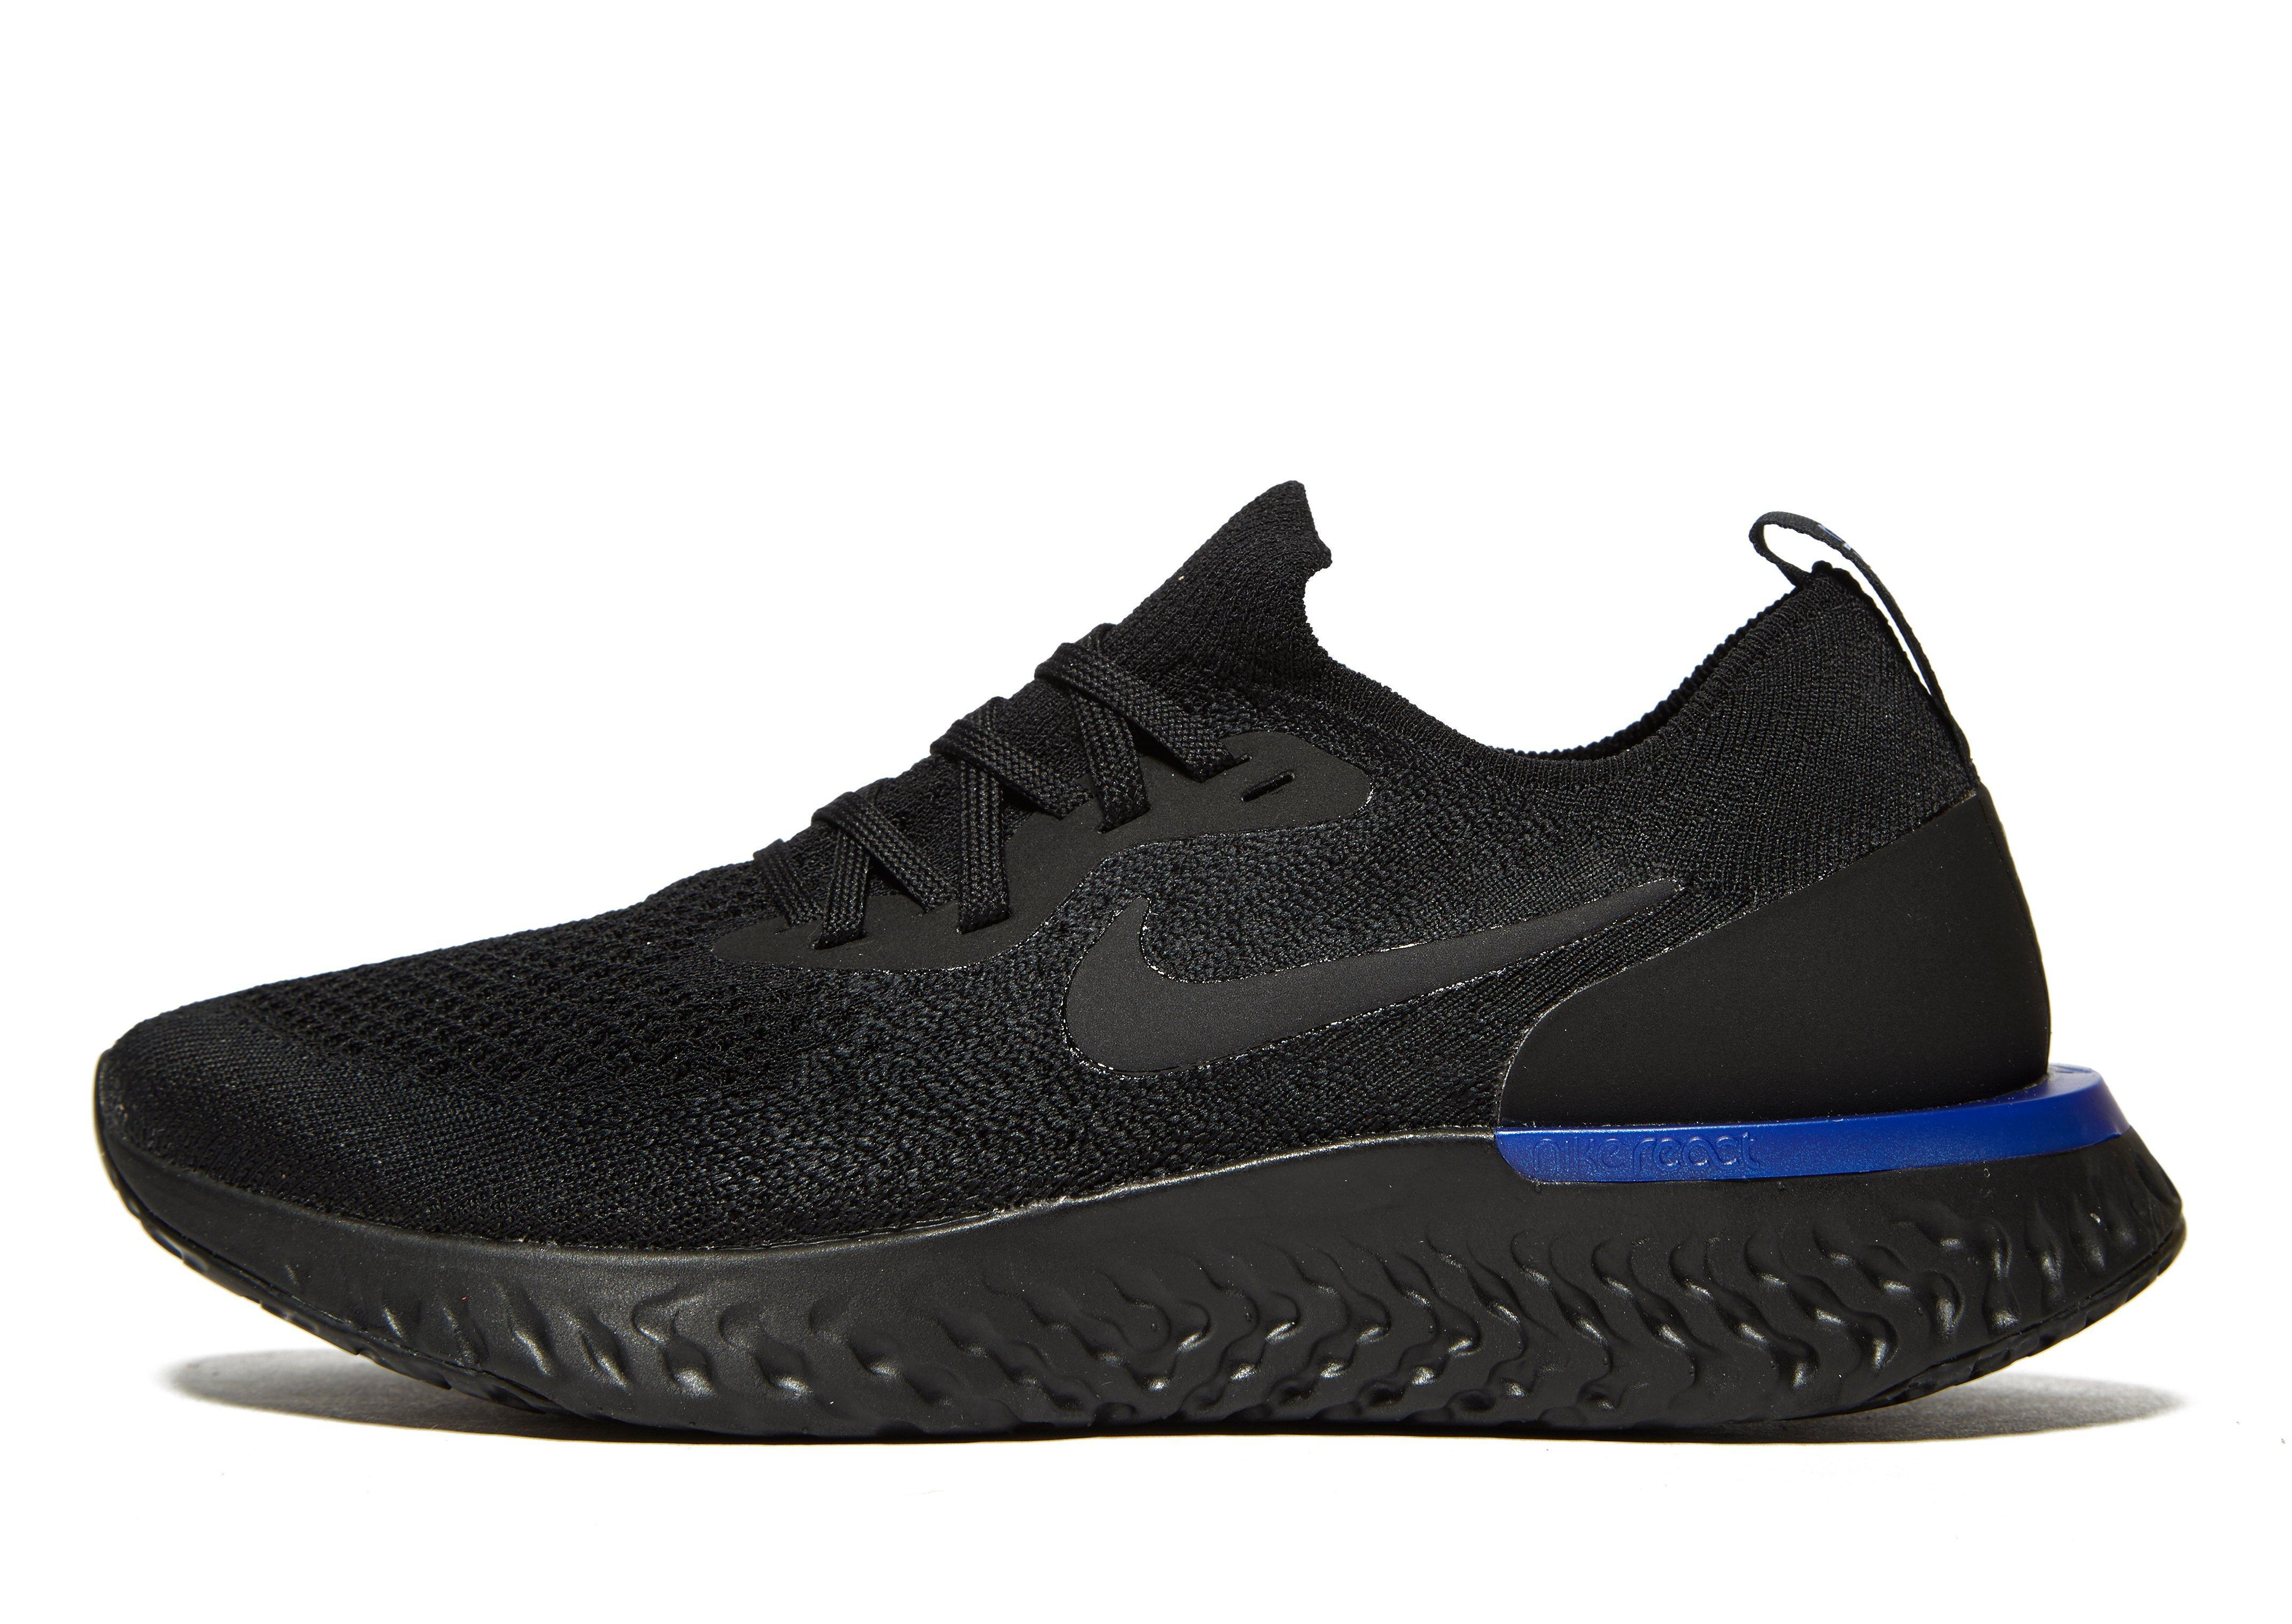 buy popular 1177b 5ab41 ... where can i buy nike epic react flyknit in sort sort in save lyst  080279 cec7e